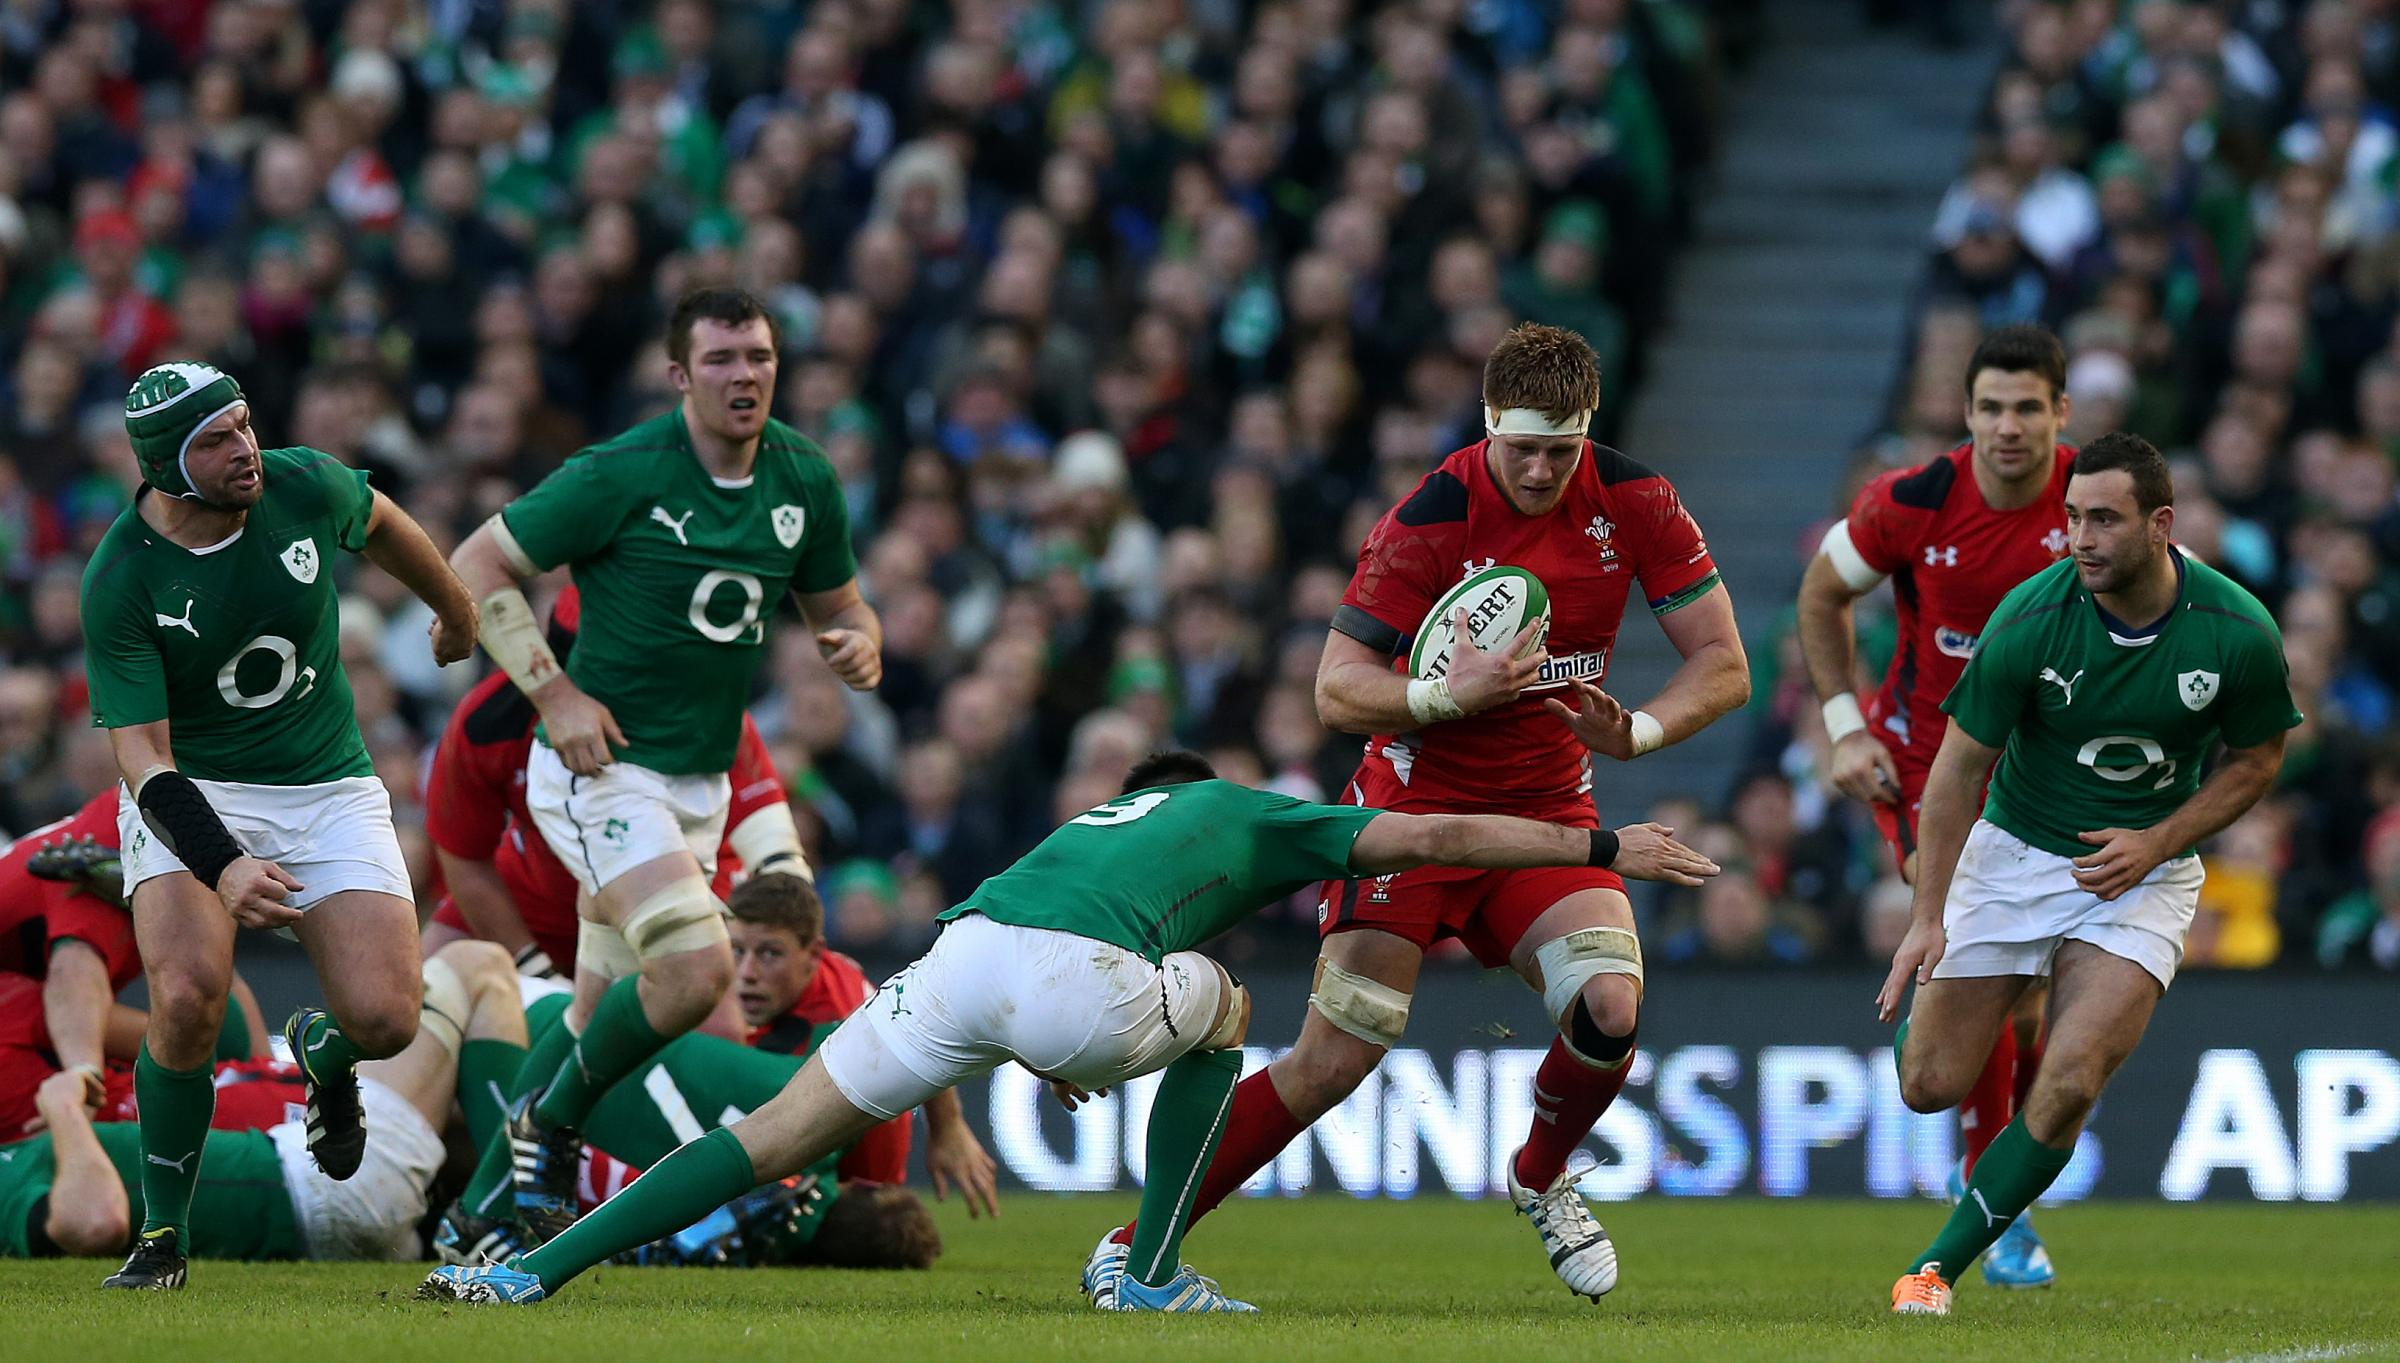 Wales's Andrew Coombs is tackled by Ireland's Conor Murray during the RBS 6 Nations match at the Aviva Stadium, Dublin, Ireland. PRESS ASSOCIATION Photo. Picture date: Saturday February 8, 2014. See PA story RUGBYU Ireland. Photo credit should rea